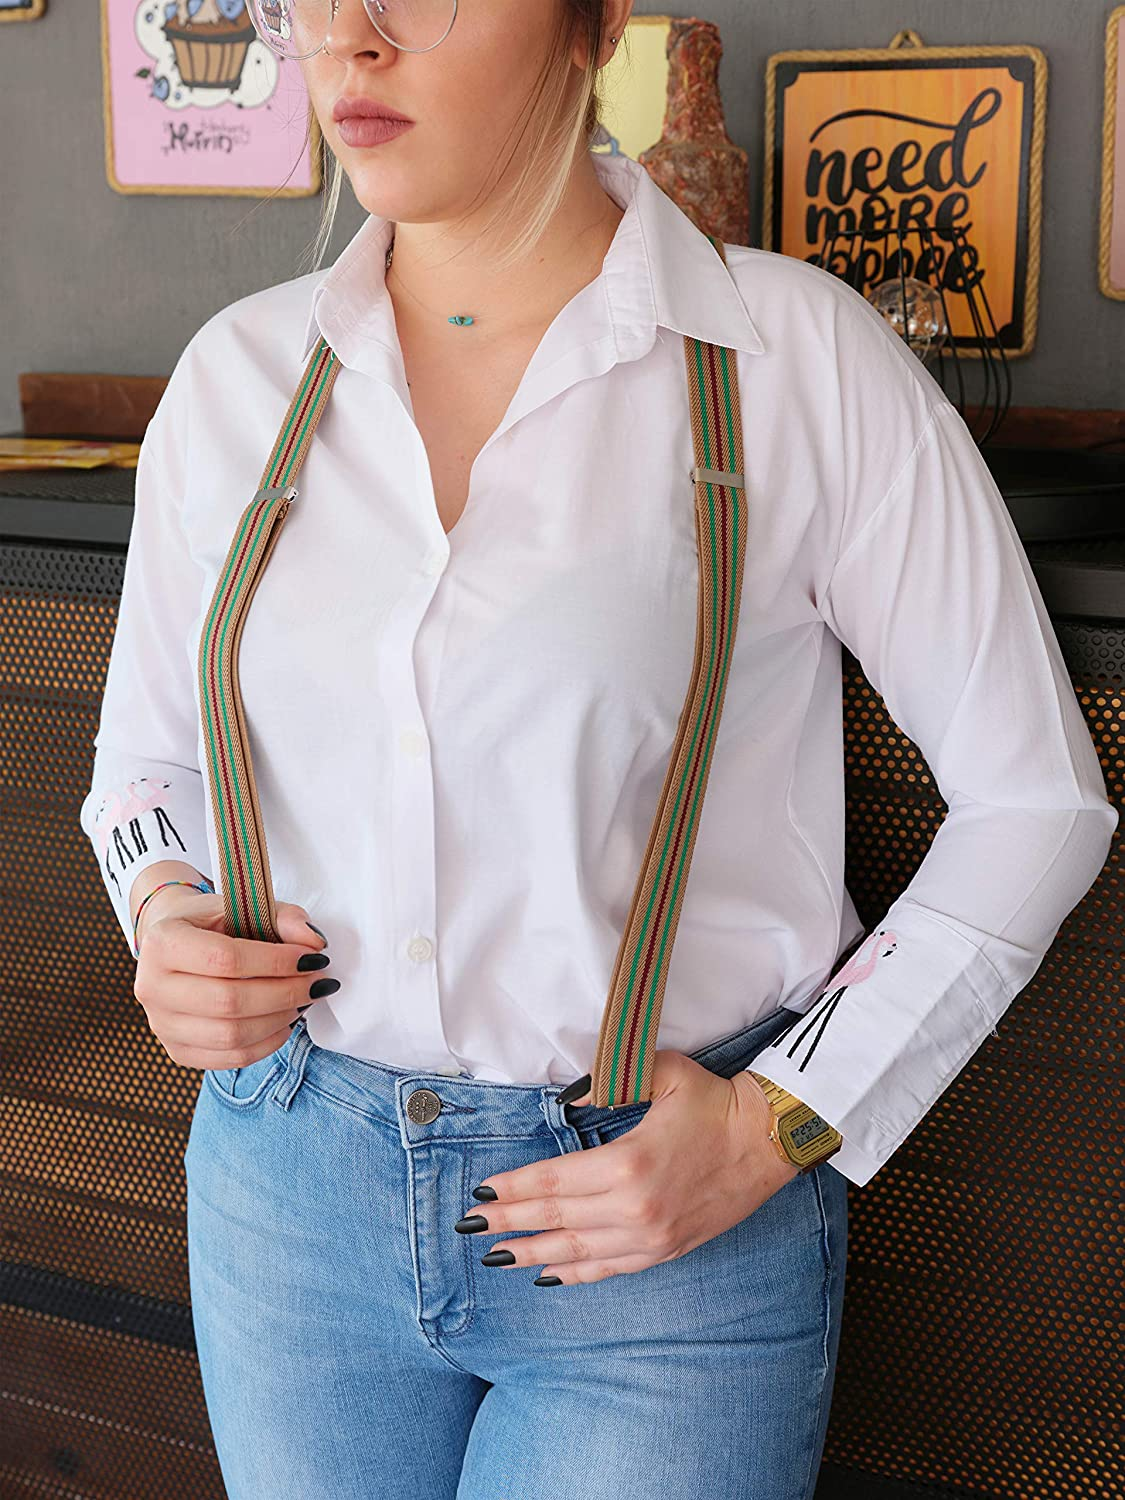 1 Inch Width Y Back Style Adjustable Straps and Clips by FOREER Suspenders for Women